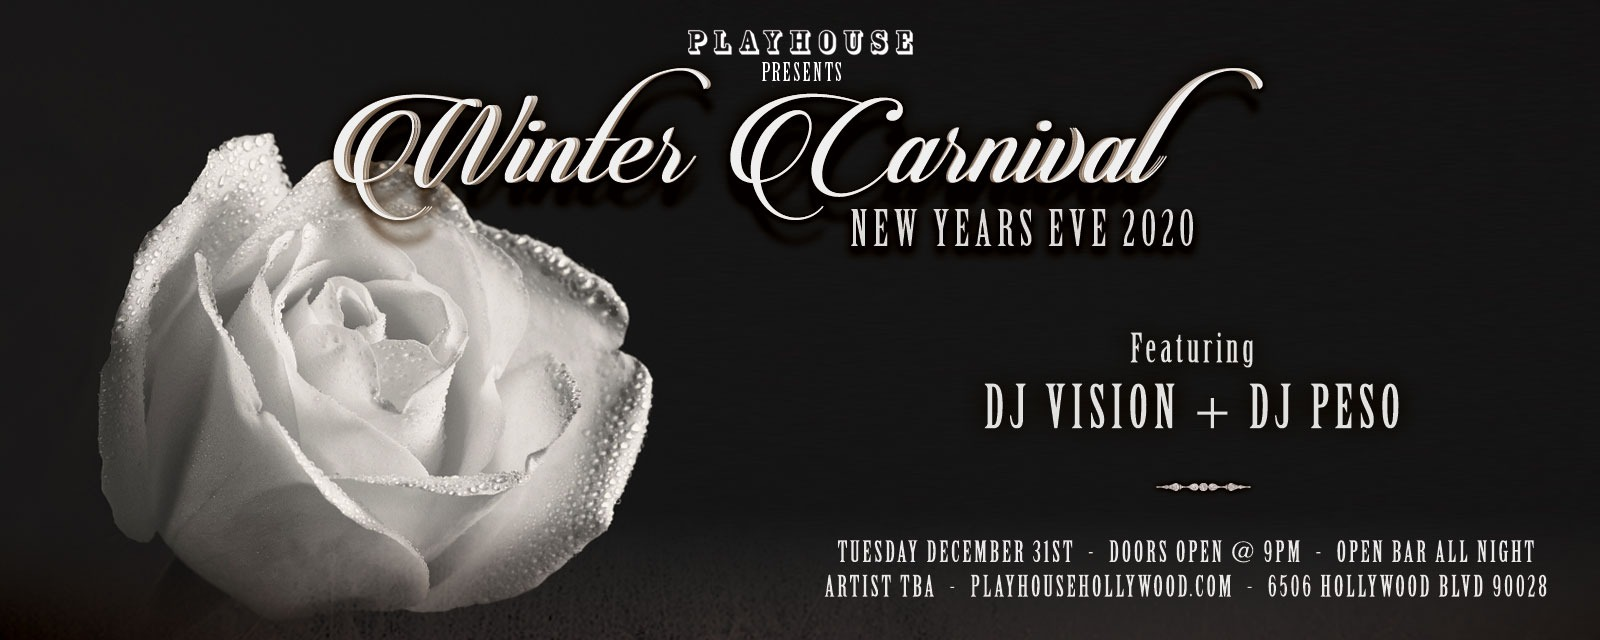 Playhouse Hollywood New Years 2020 Tickets